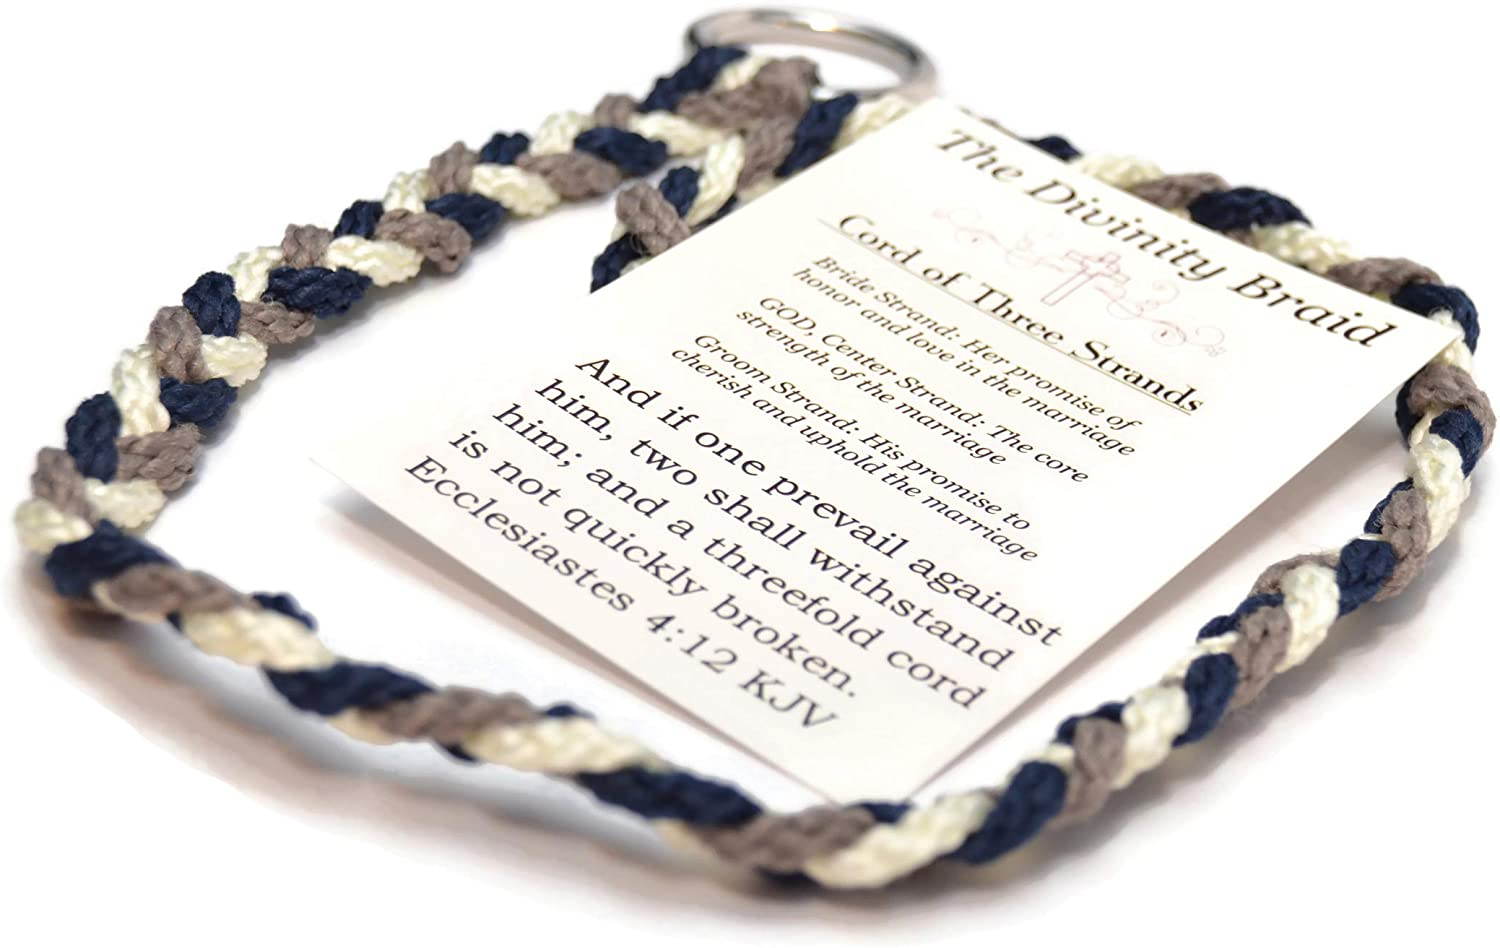 Divinity Braid Navy Pewter Cord of Three Strands #Wedding #CordOfThreeStrands #DivinityBraid #UnityCeremony #WeddingCeremony #YourWedding #DreamWedding #CordOf3